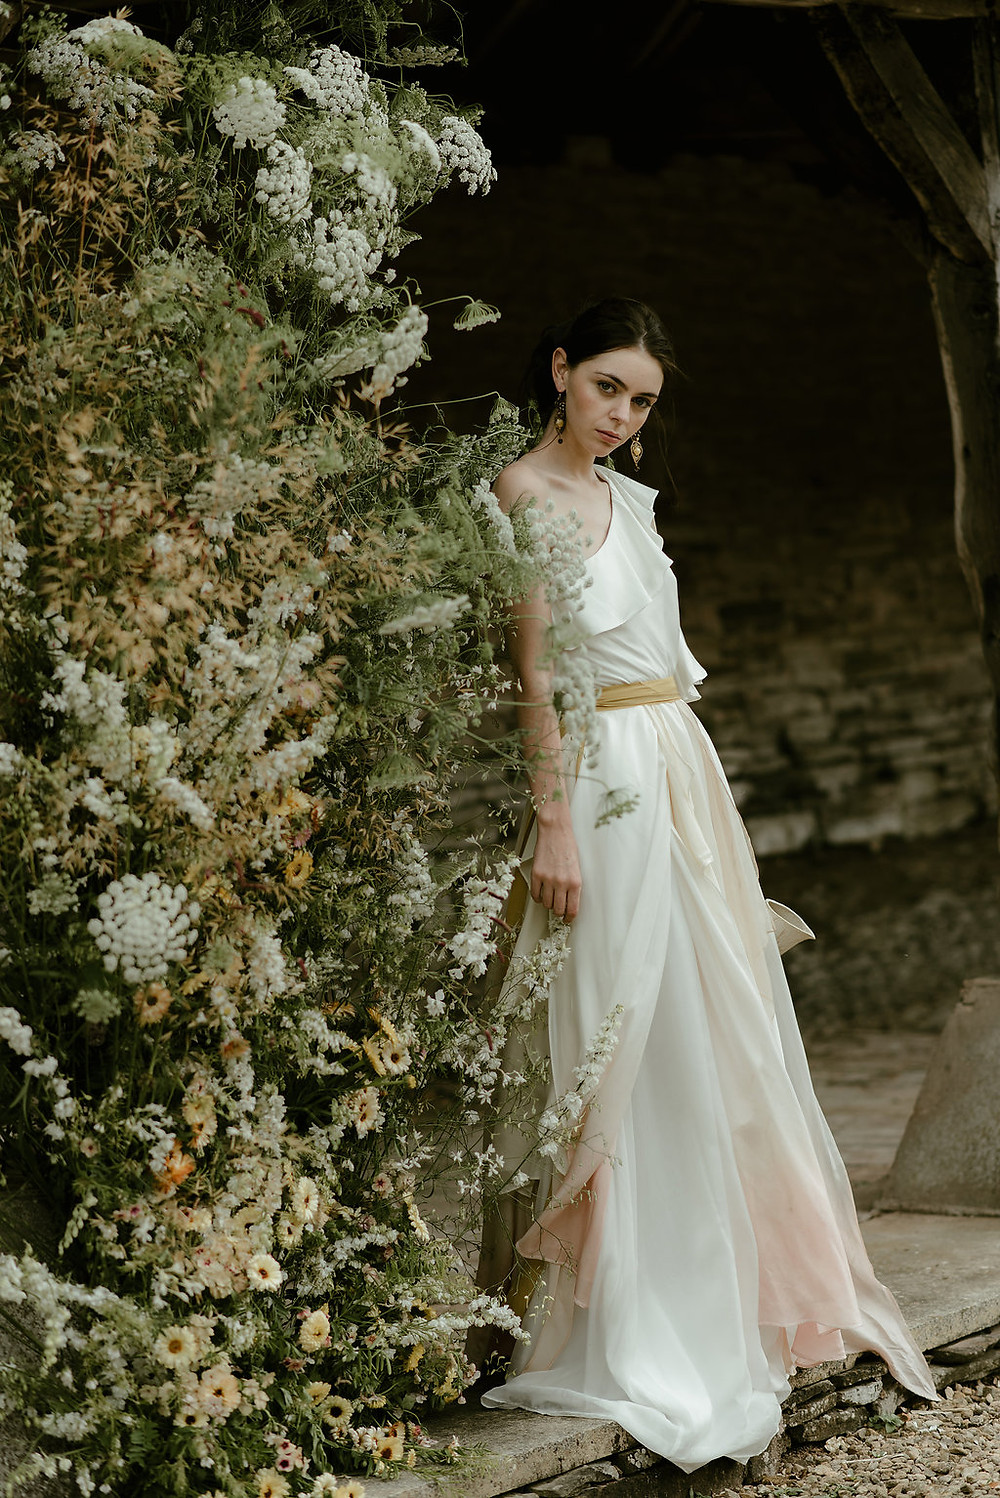 Jessica Turner Designs stocked in Willoughby and Wolf dip dye wedding dress for the boho bride